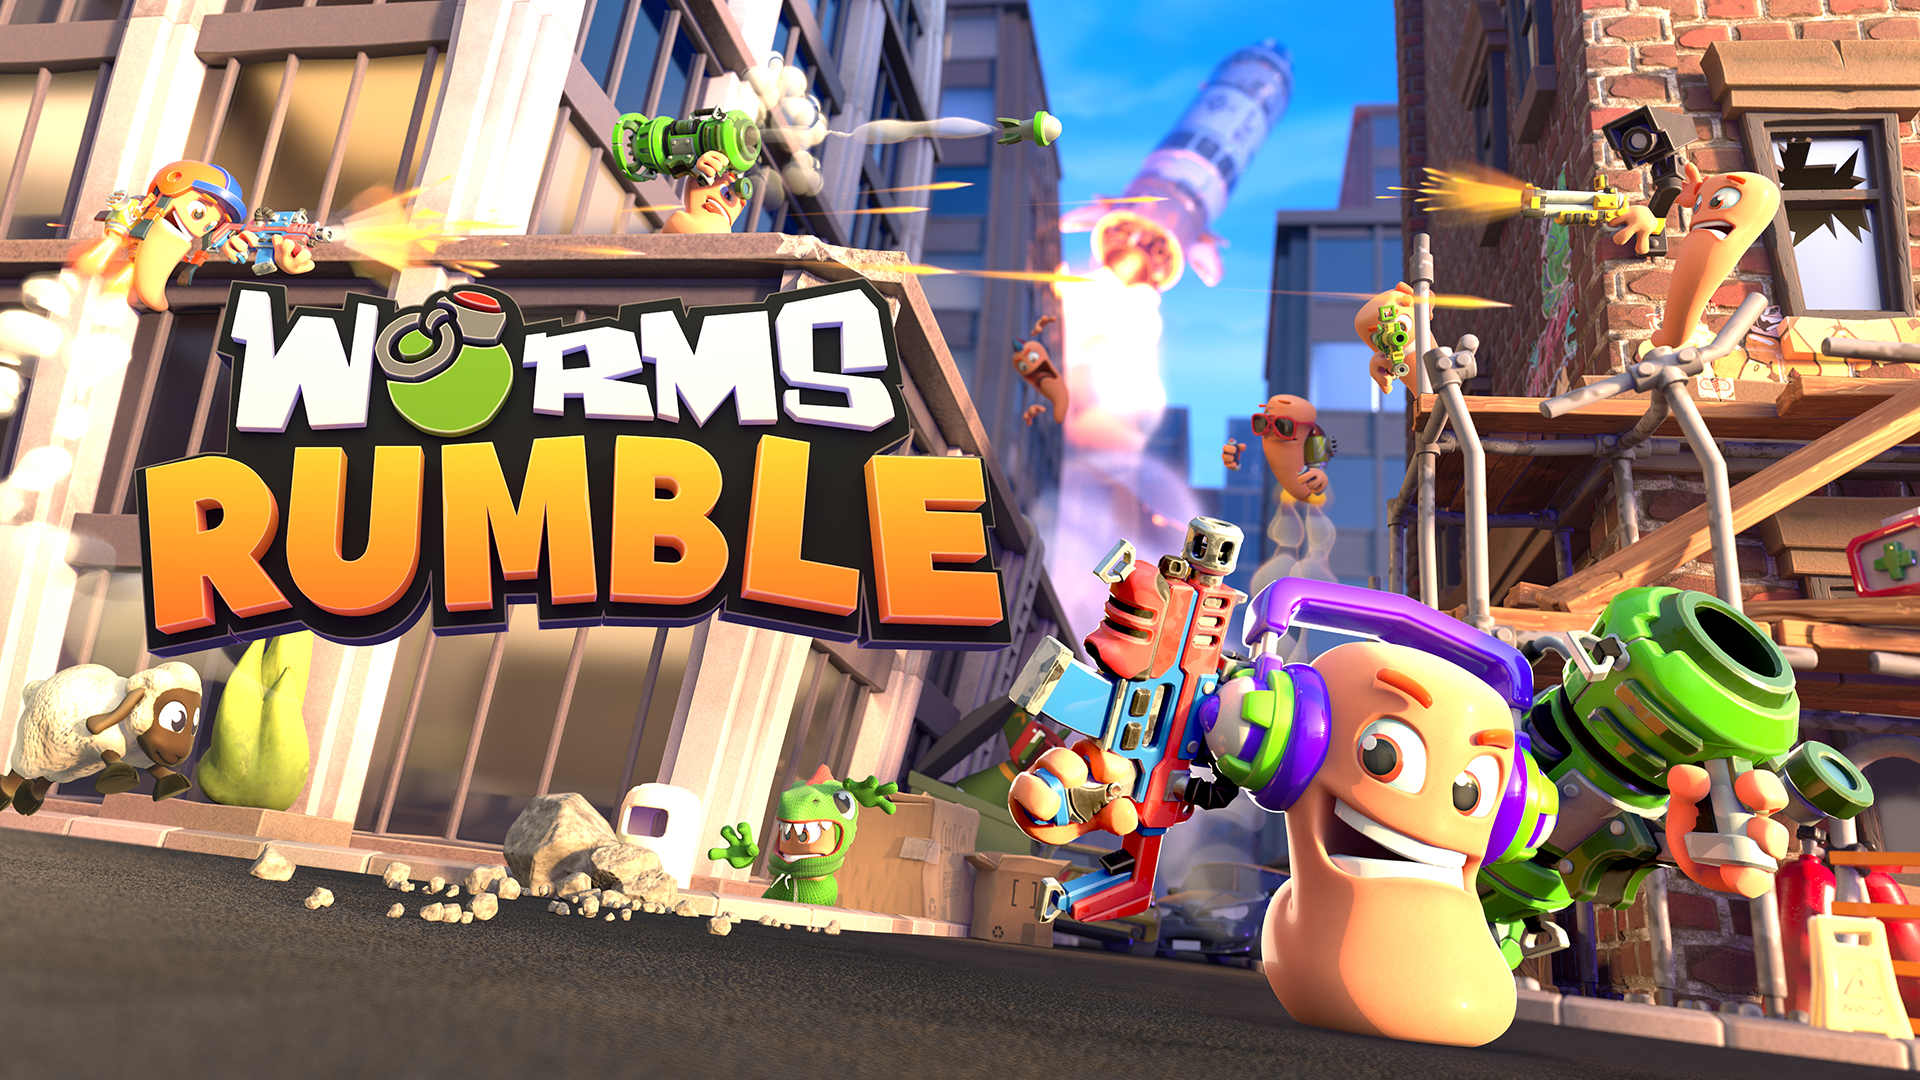 Worms Rumble logo and artwork